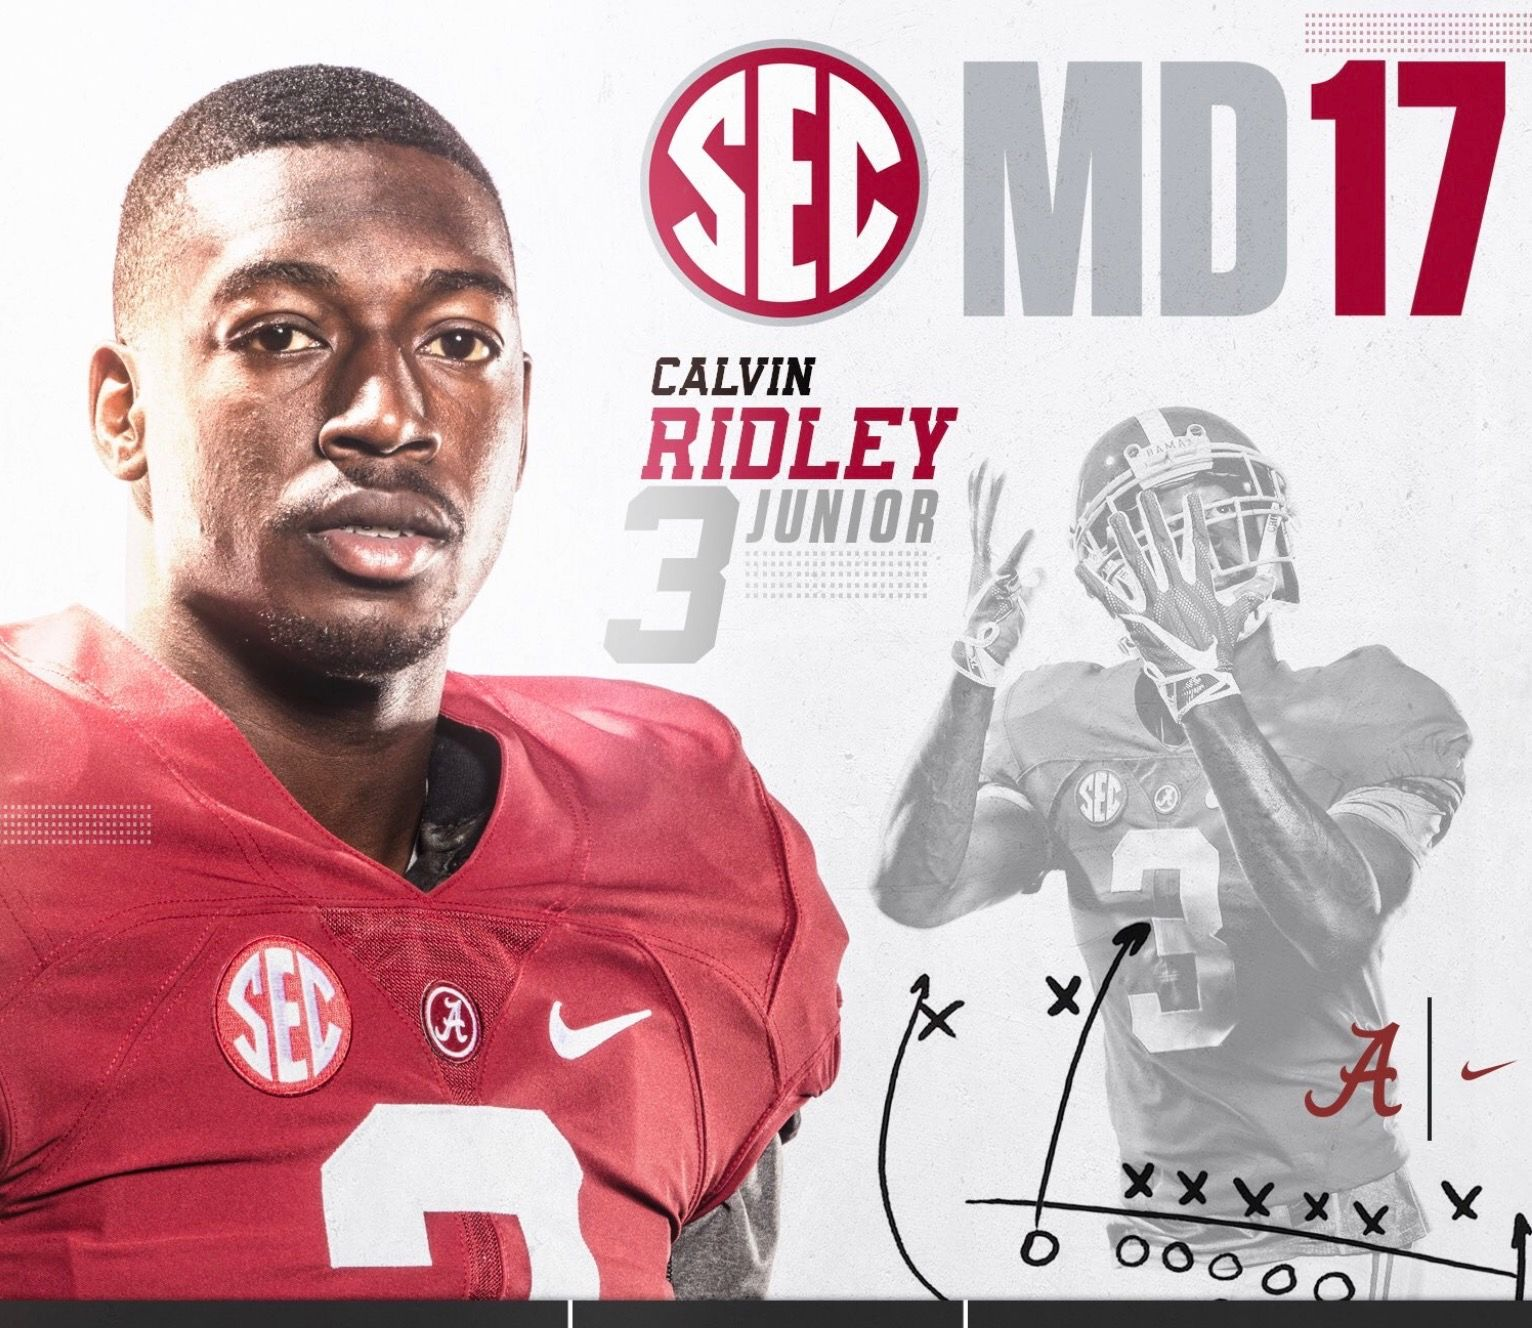 Calvin Ridley Sec Media Days Poster Alabama Rolltide Bama Builtbybama Rtr Alabama Crimson Tide Football Alabama Football Roll Tide Alabama Crimson Tide